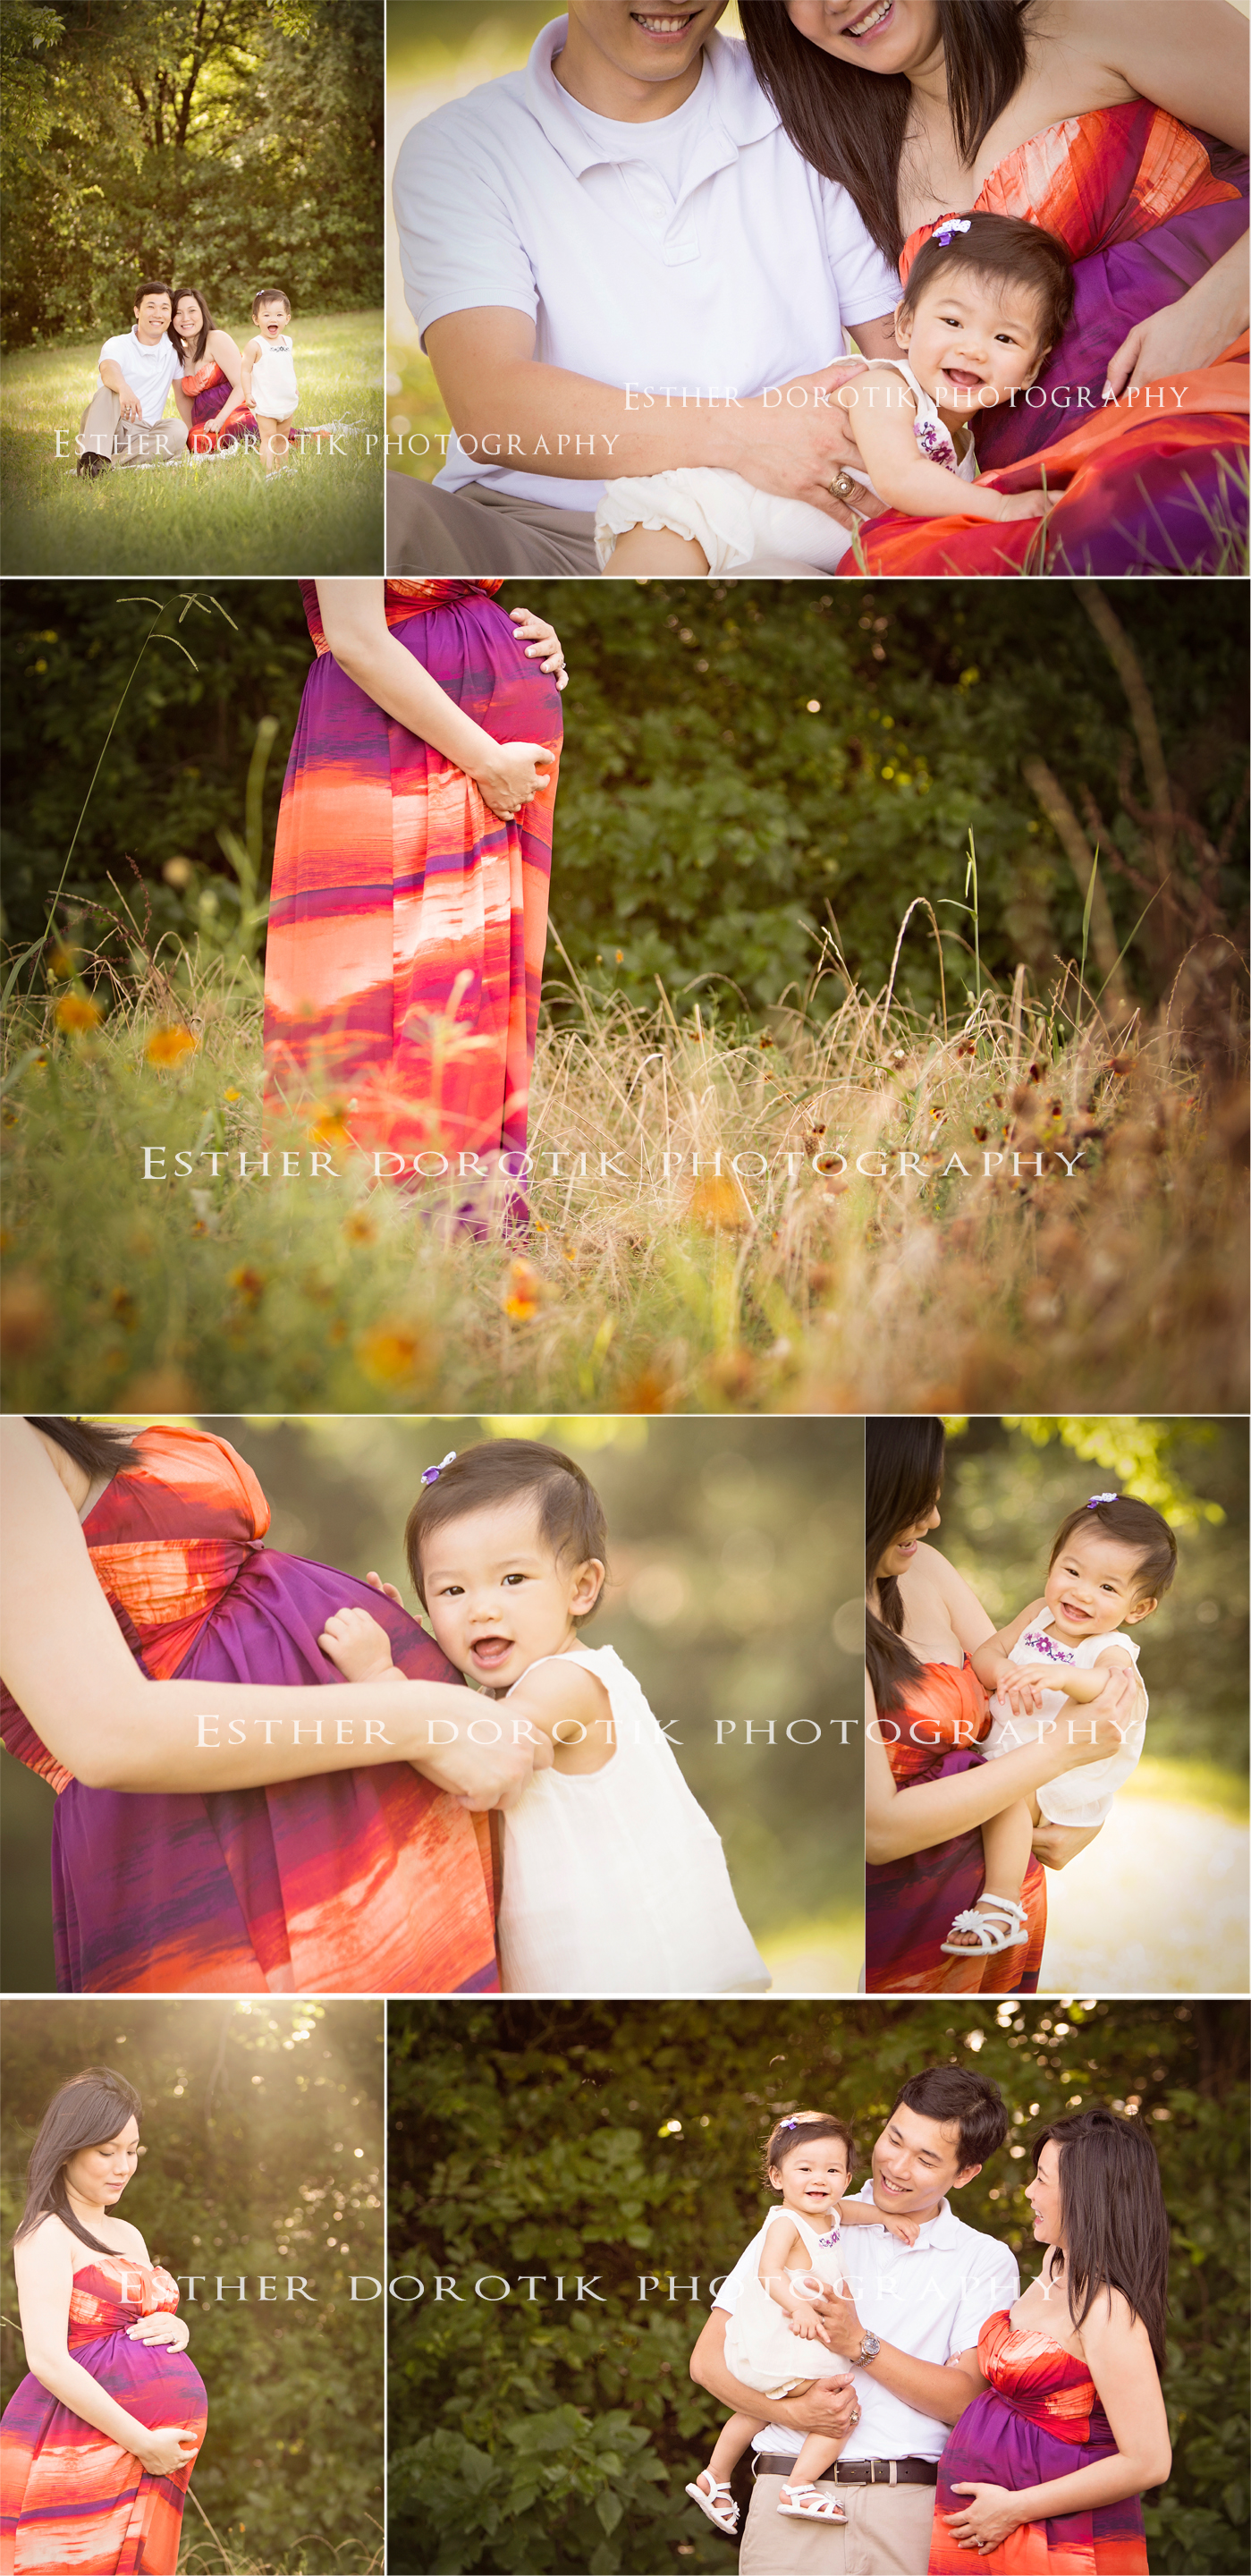 family-photography-of-baby-with-pregnant-mommy-in-flower-field-by-Keller-newborn-photographer